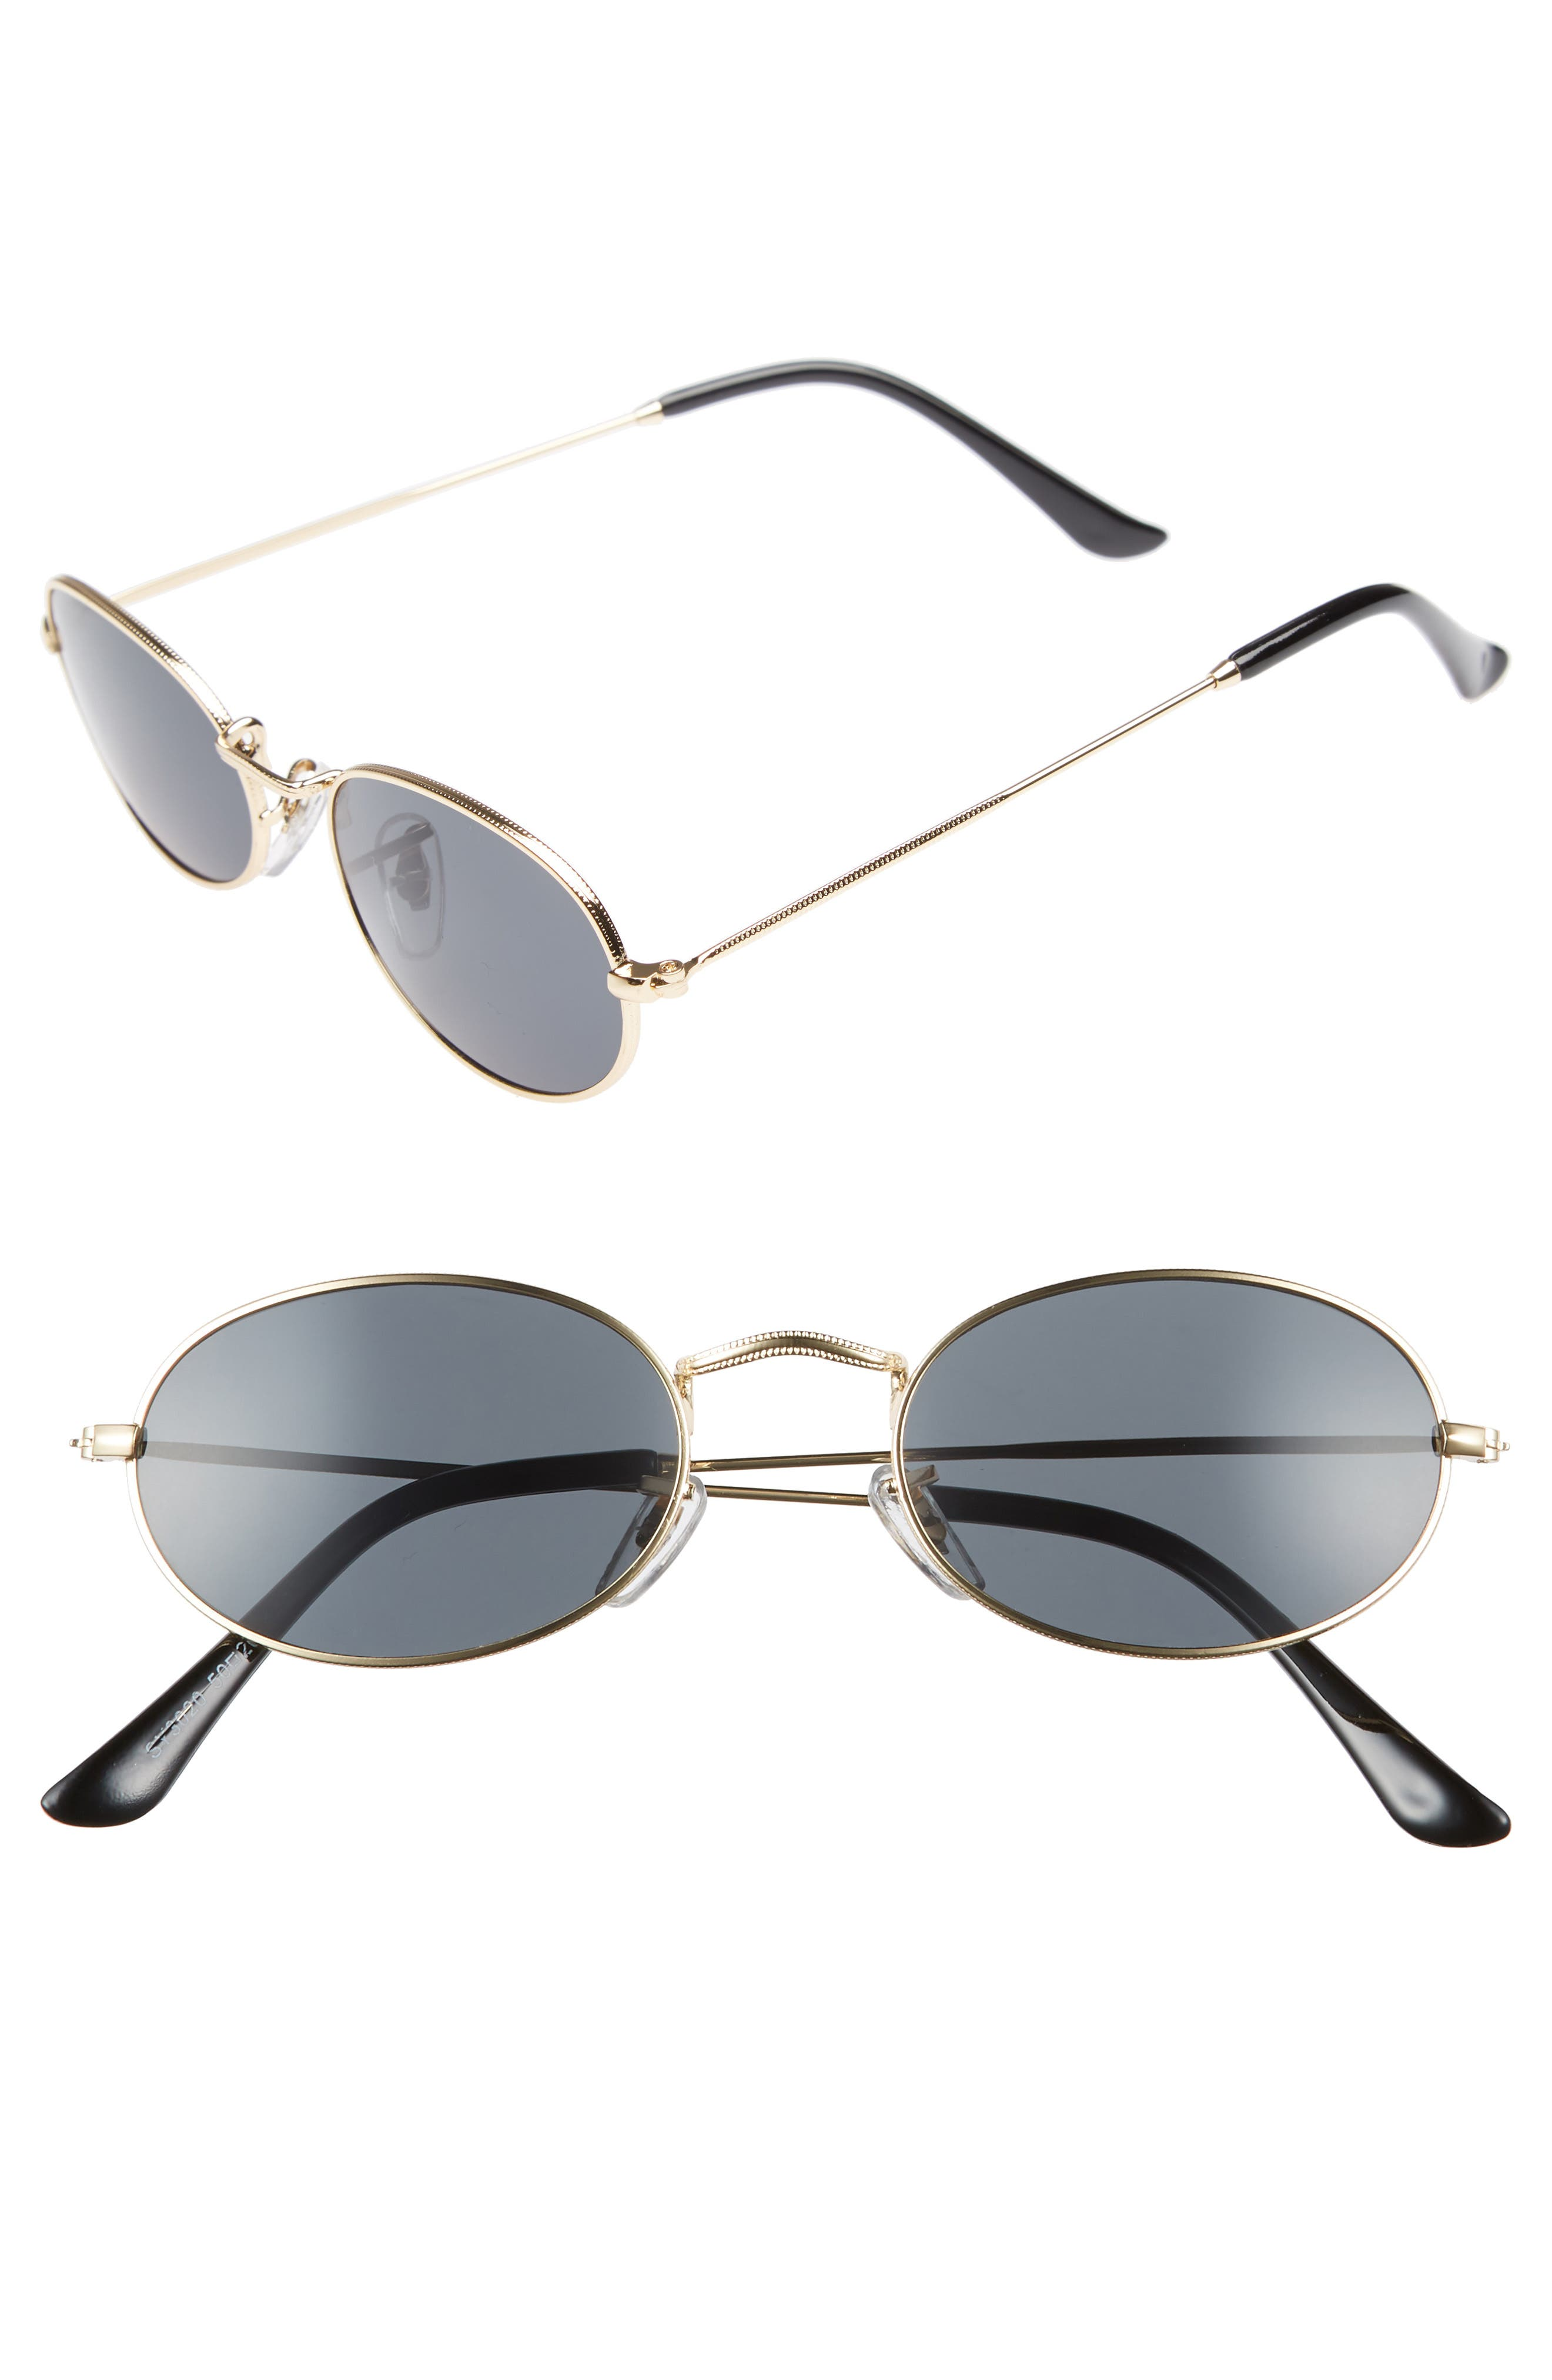 50mm Round Sunglasses,                         Main,                         color, Gold/ Black